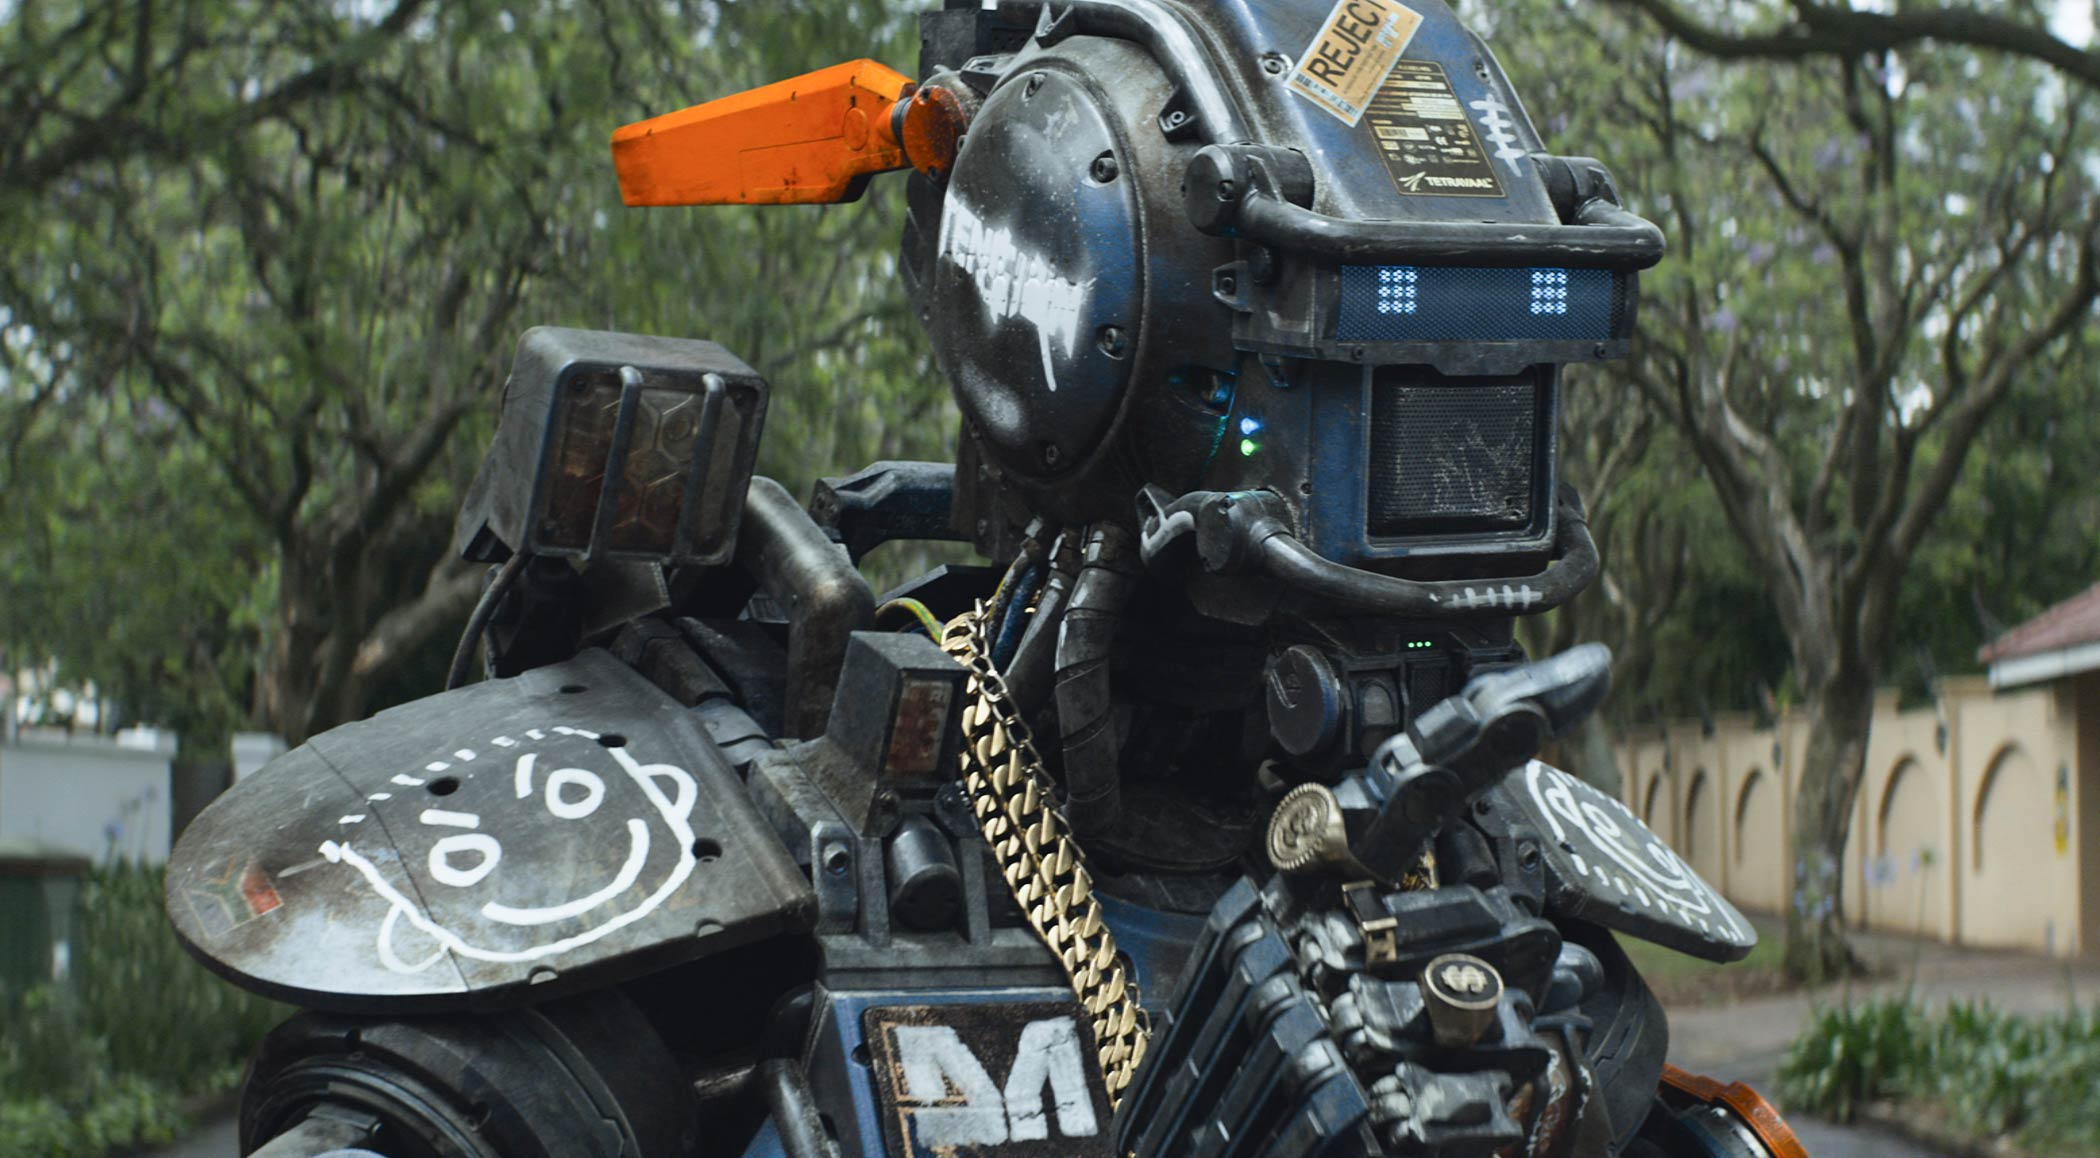 Sharlto Copley plays the voice of Chappie in Chappie